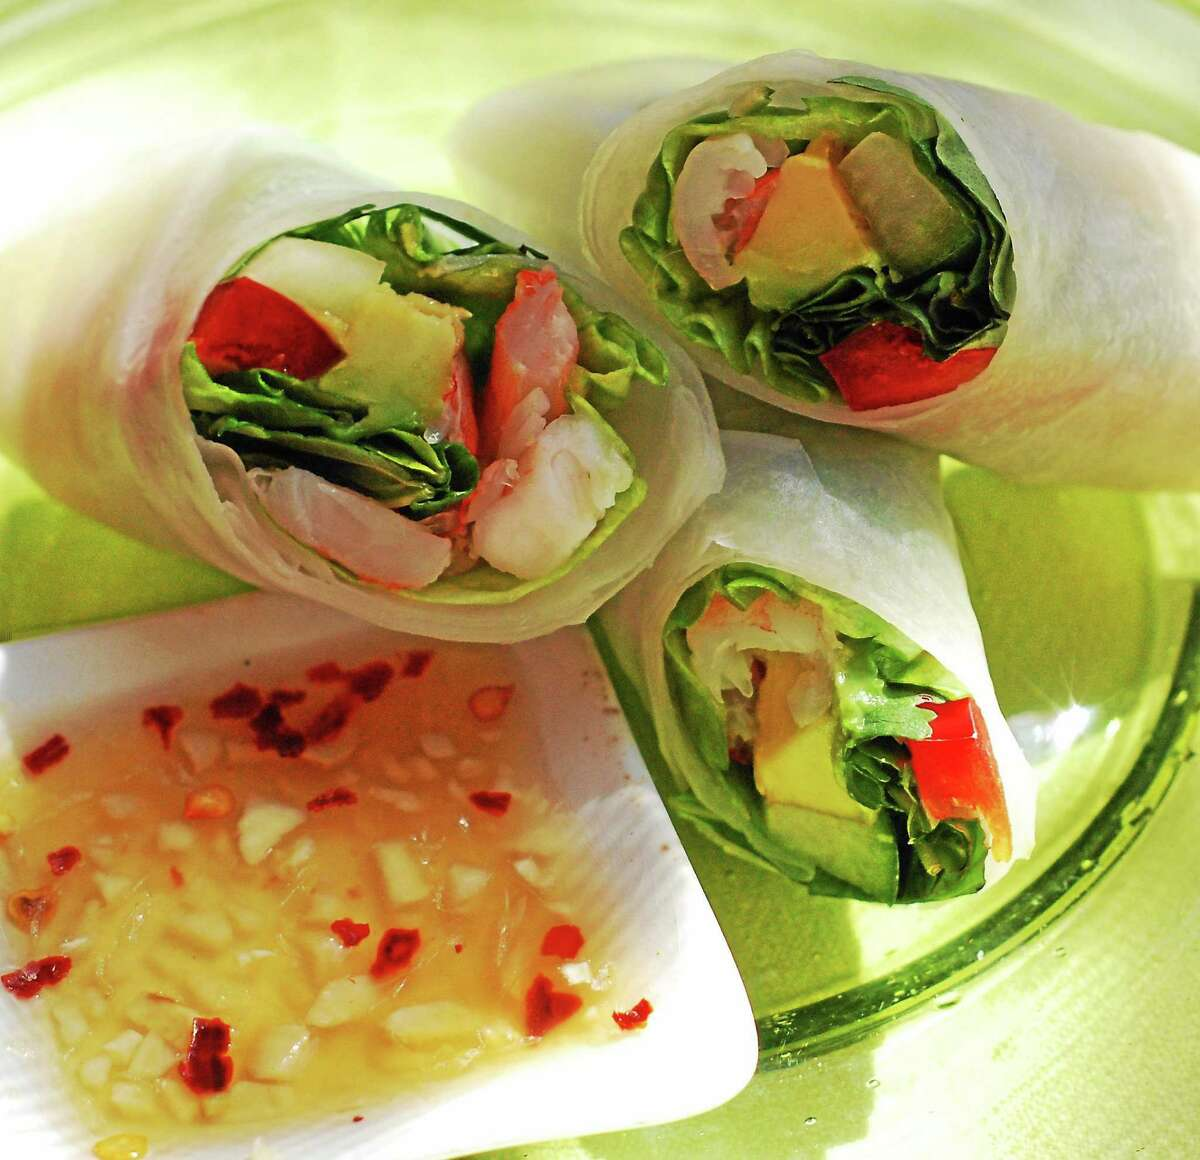 Spring rolls made by chef Amanda Cushman